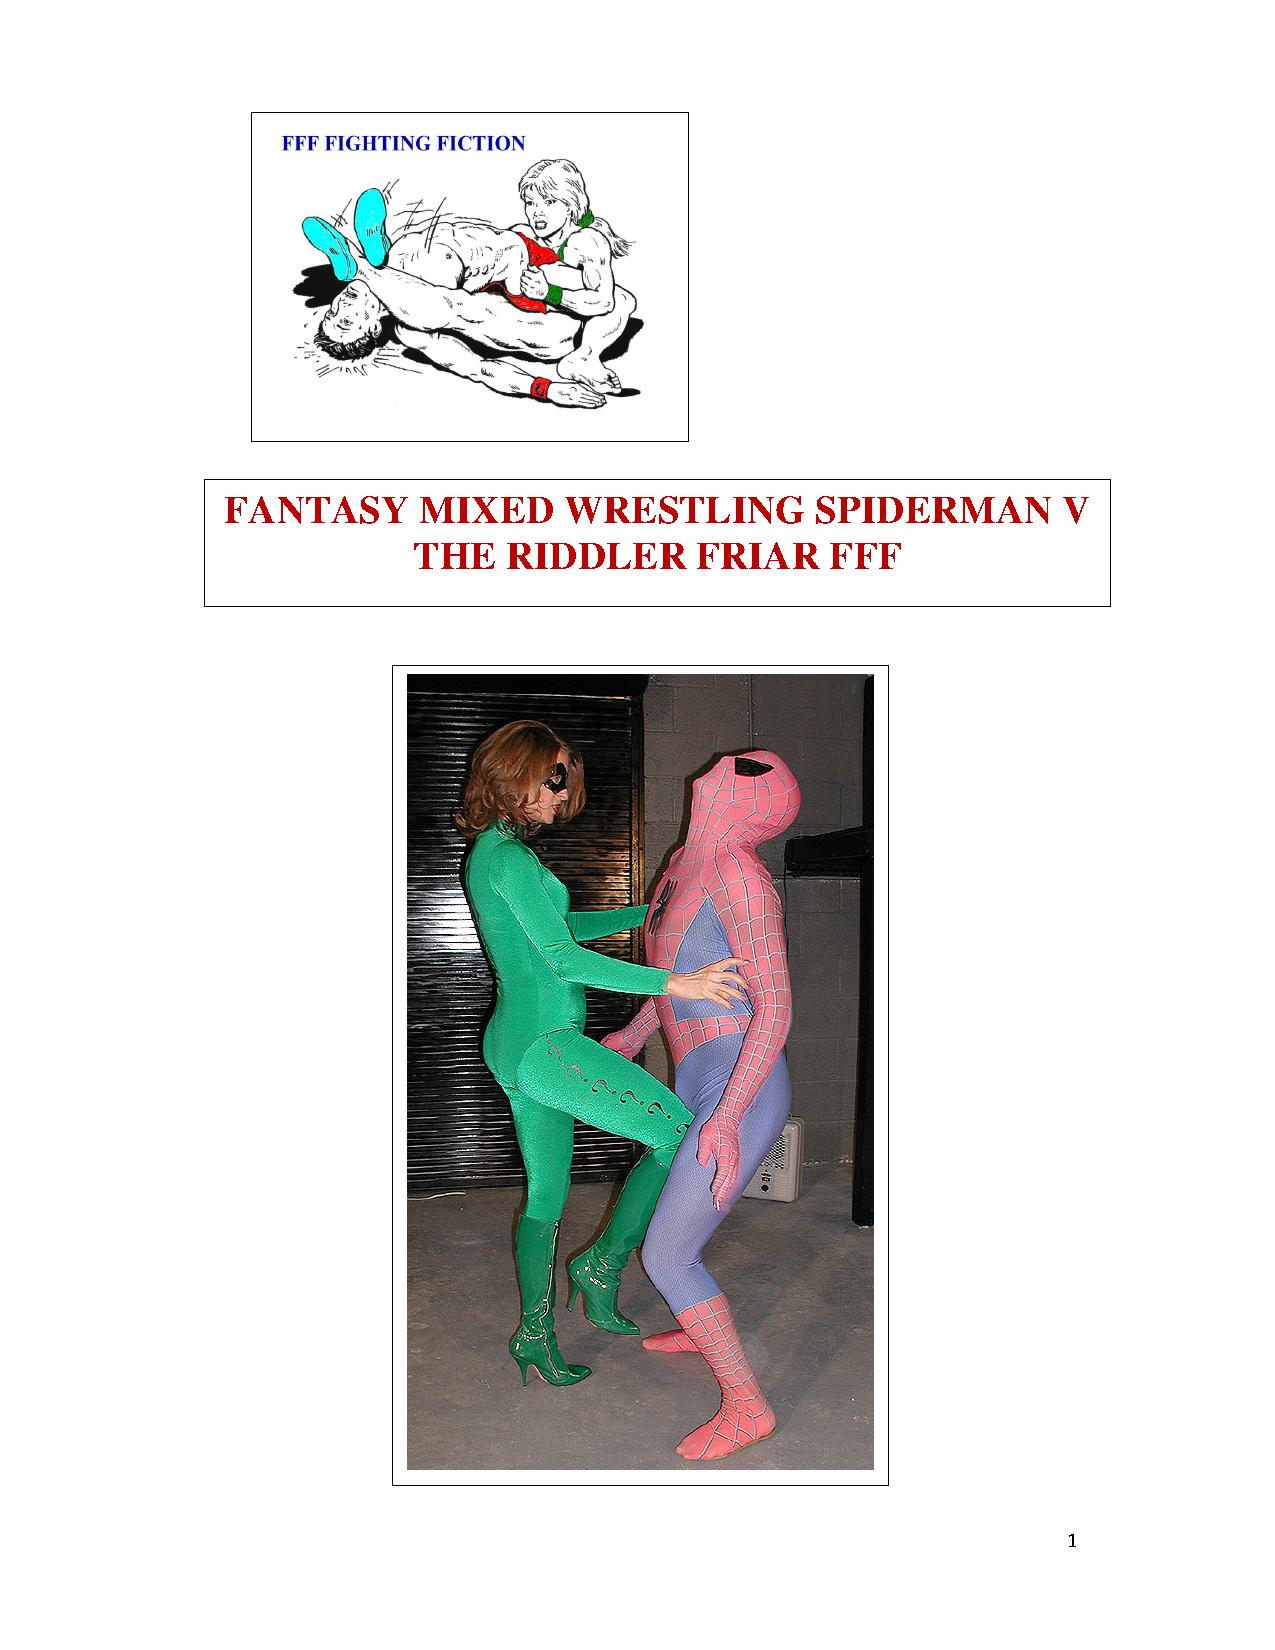 Fantasy_Mixed_Wrestling_Spiderman_v_The_Riddler_cvr_1